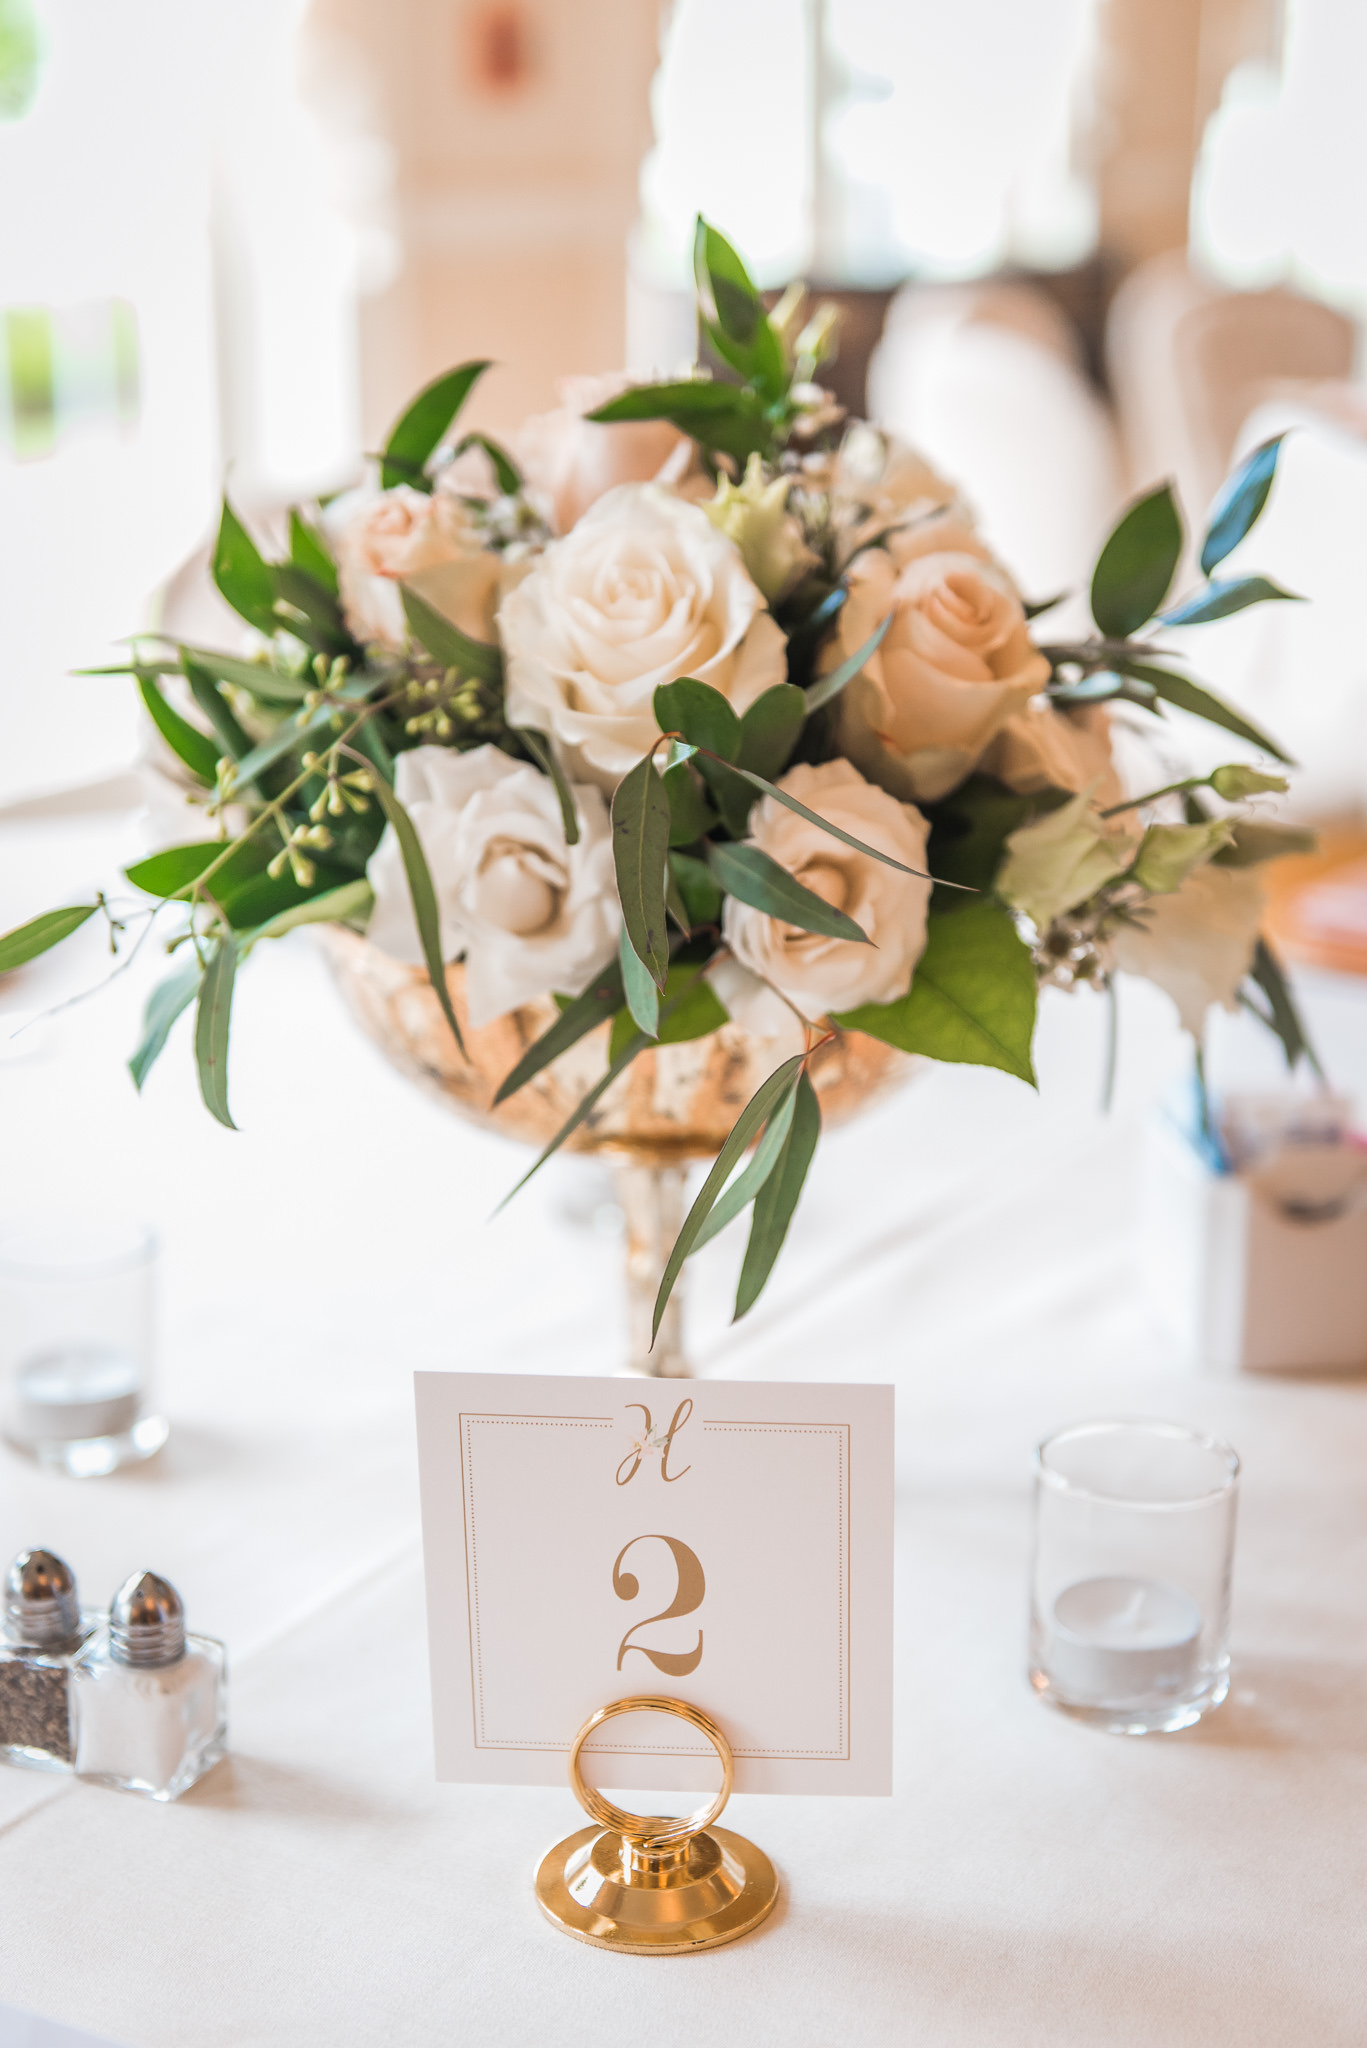 White and blush centerpieces with gold accents